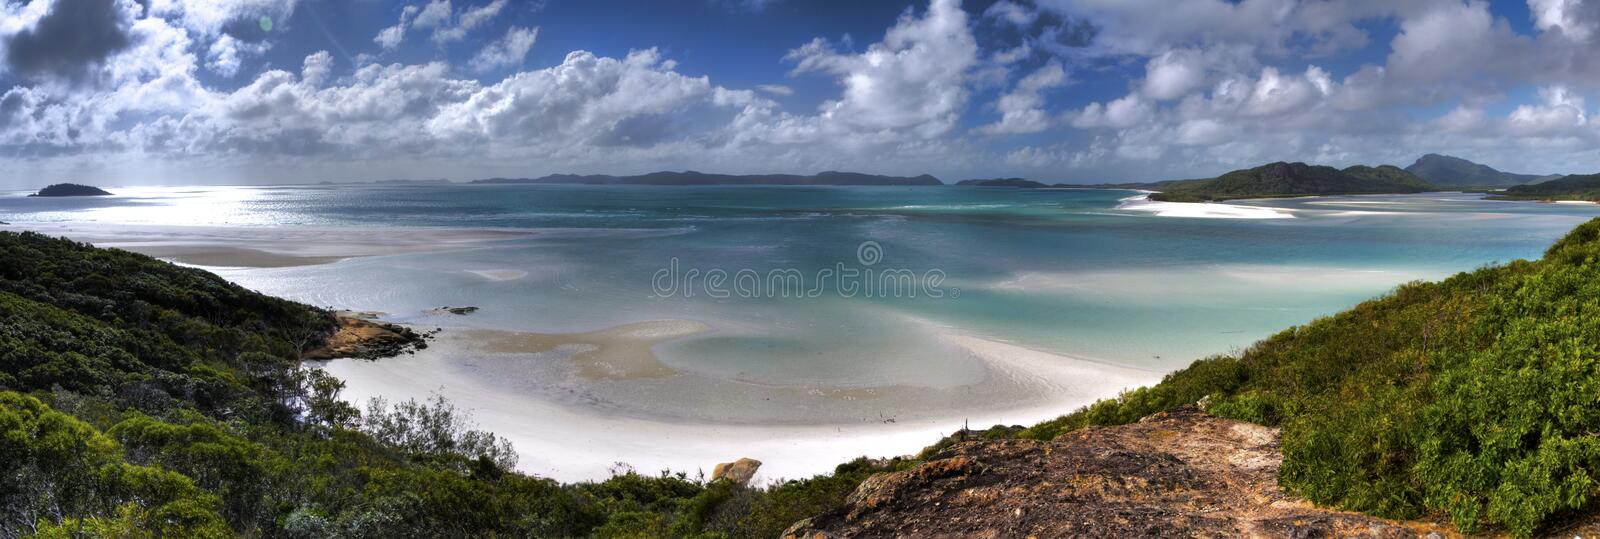 Plage blanche tropicale d'asile photographie stock